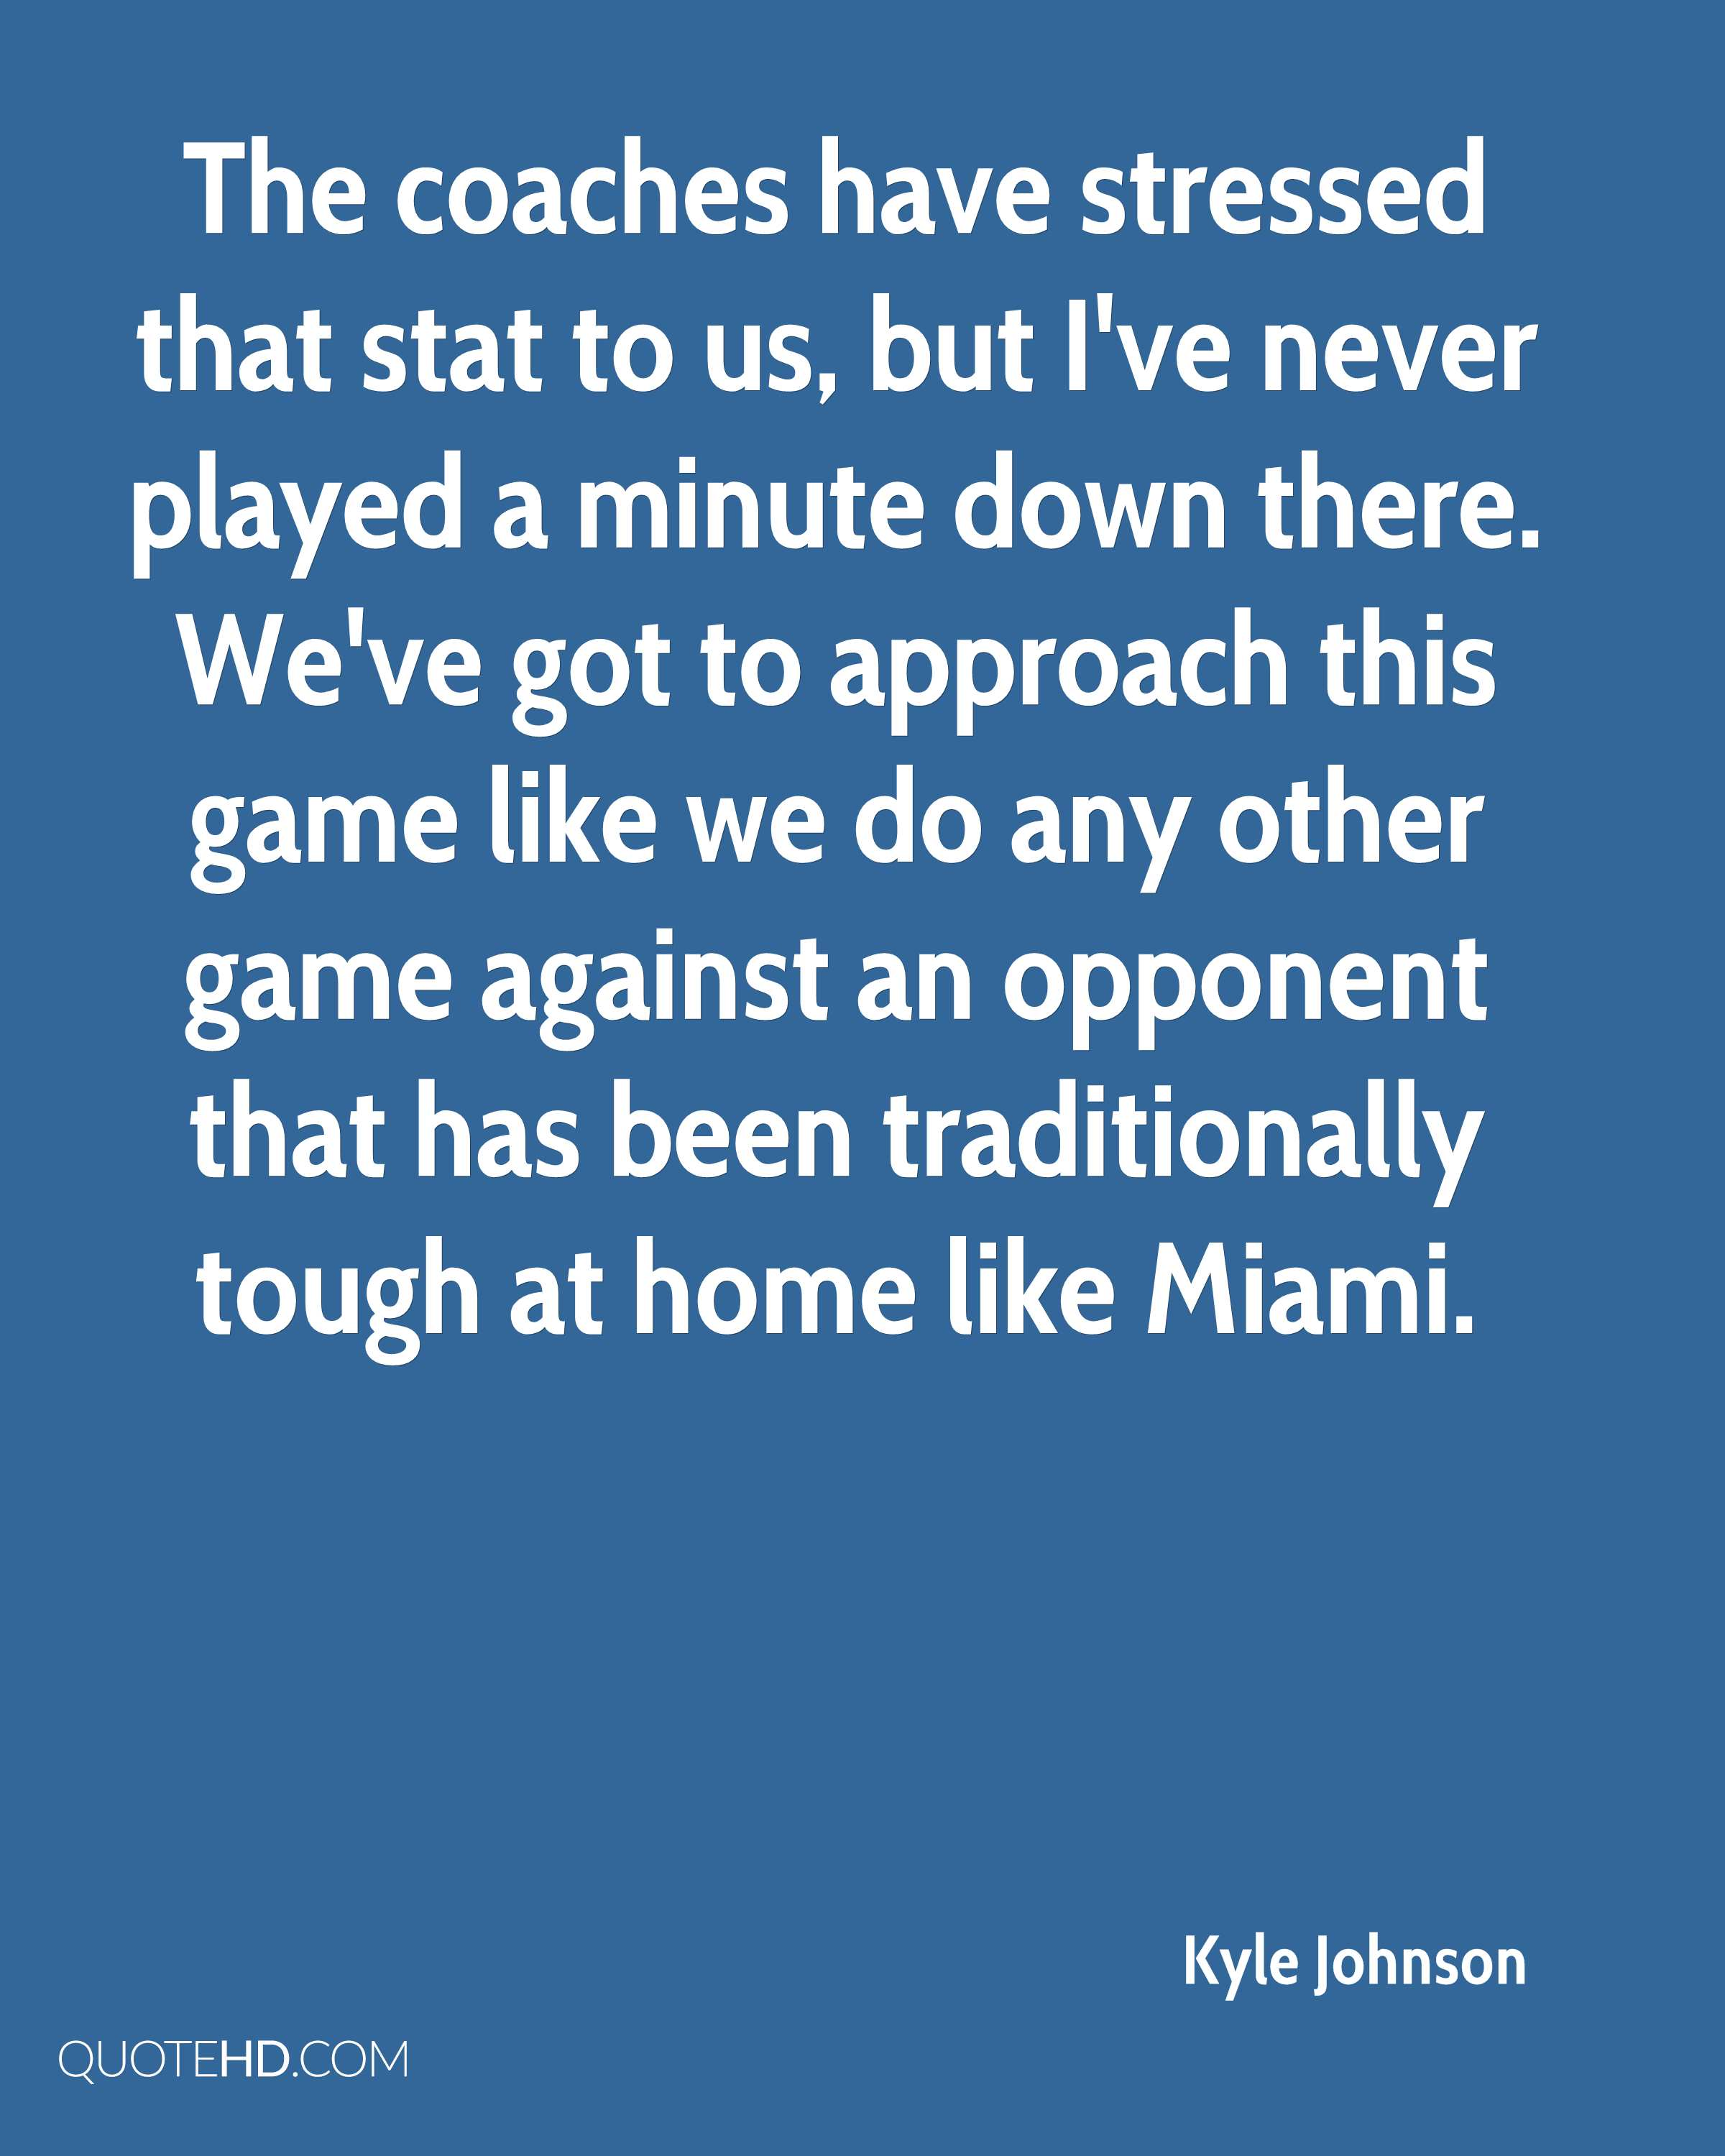 The coaches have stressed that stat to us, but I've never played a minute down there. We've got to approach this game like we do any other game against an opponent that has been traditionally tough at home like Miami.